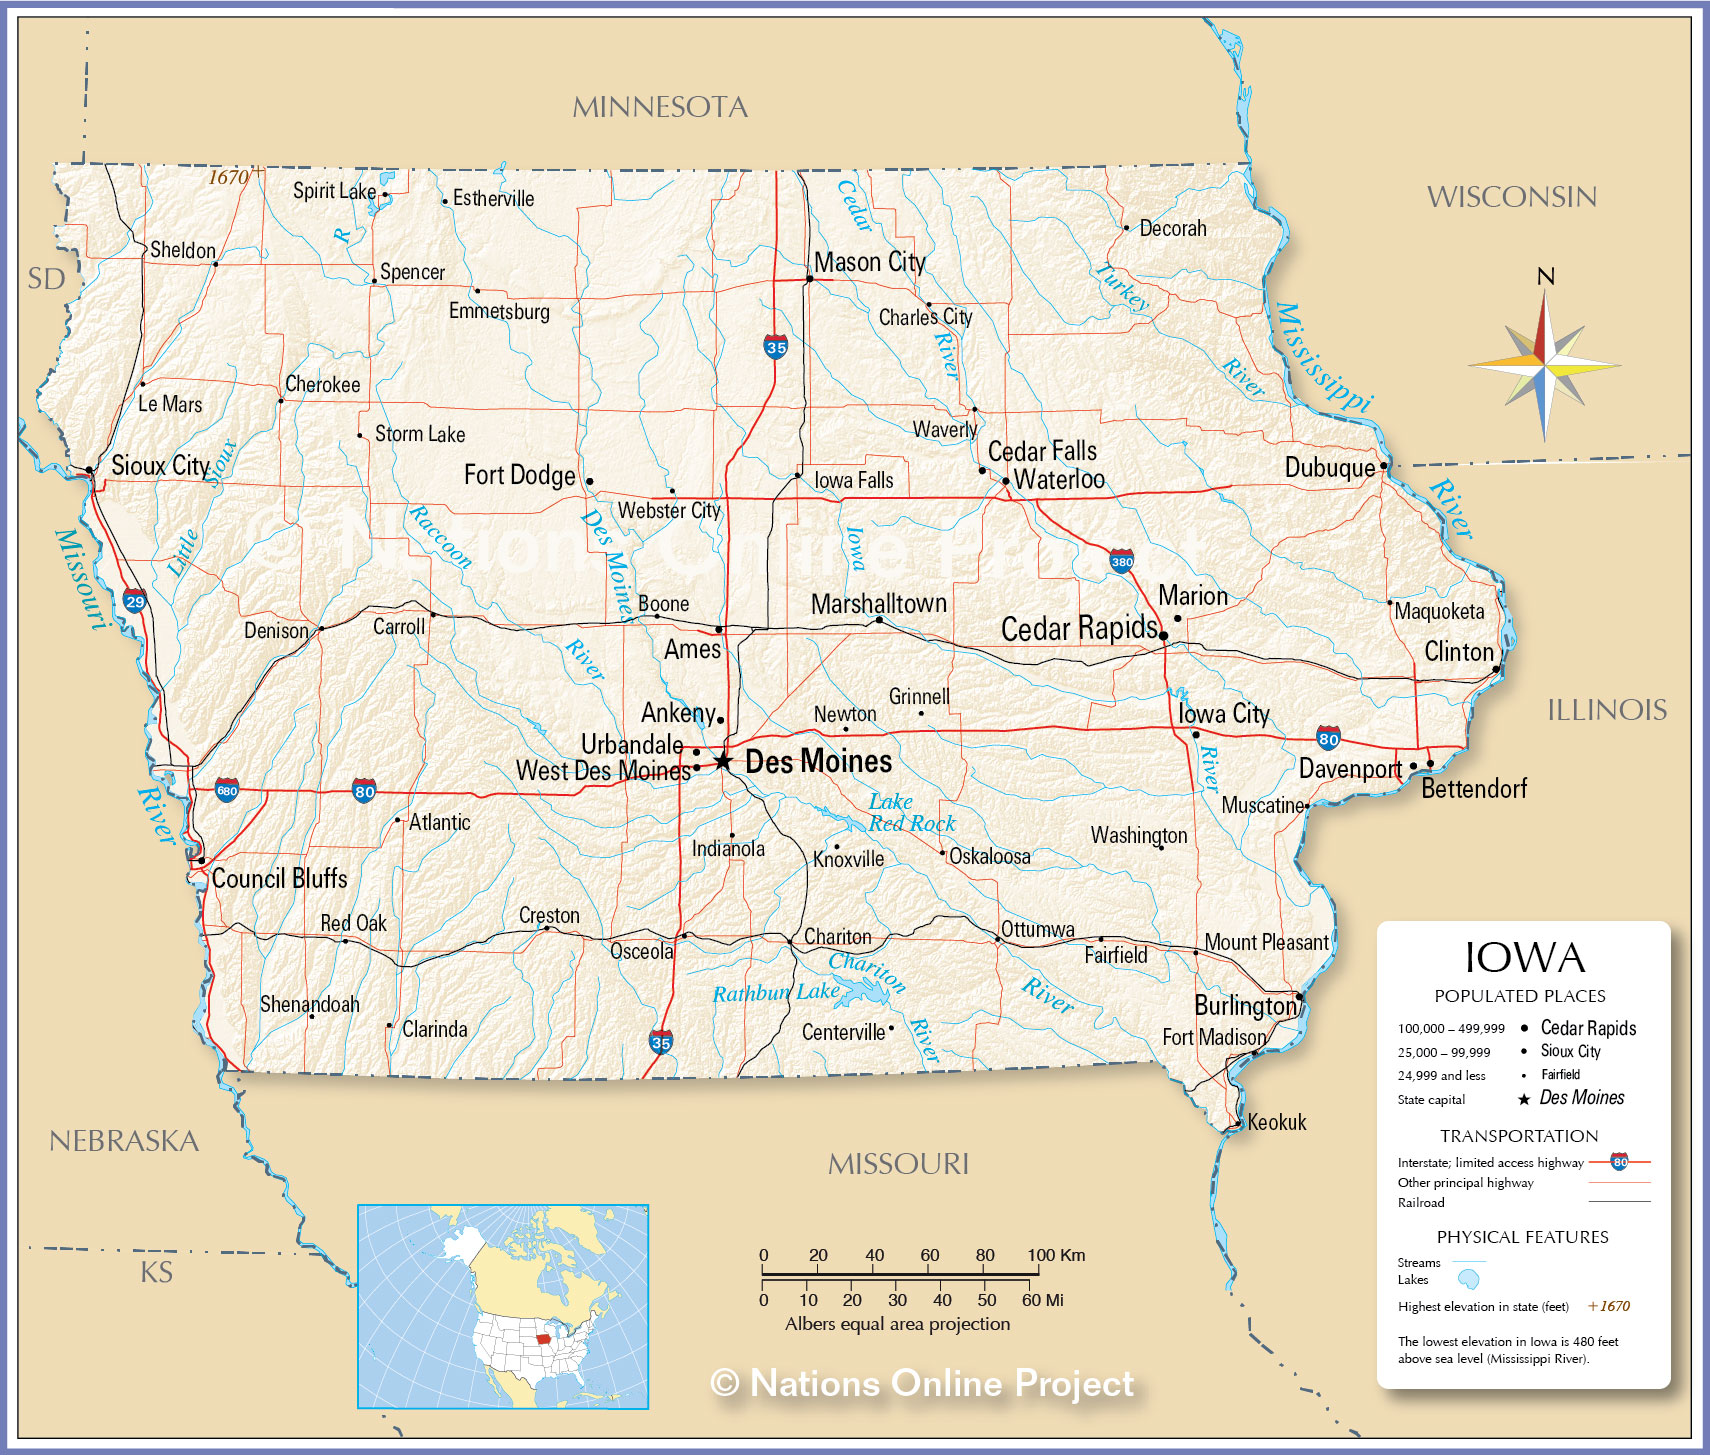 Reference Maps Of Iowa USA - Nations Online Project